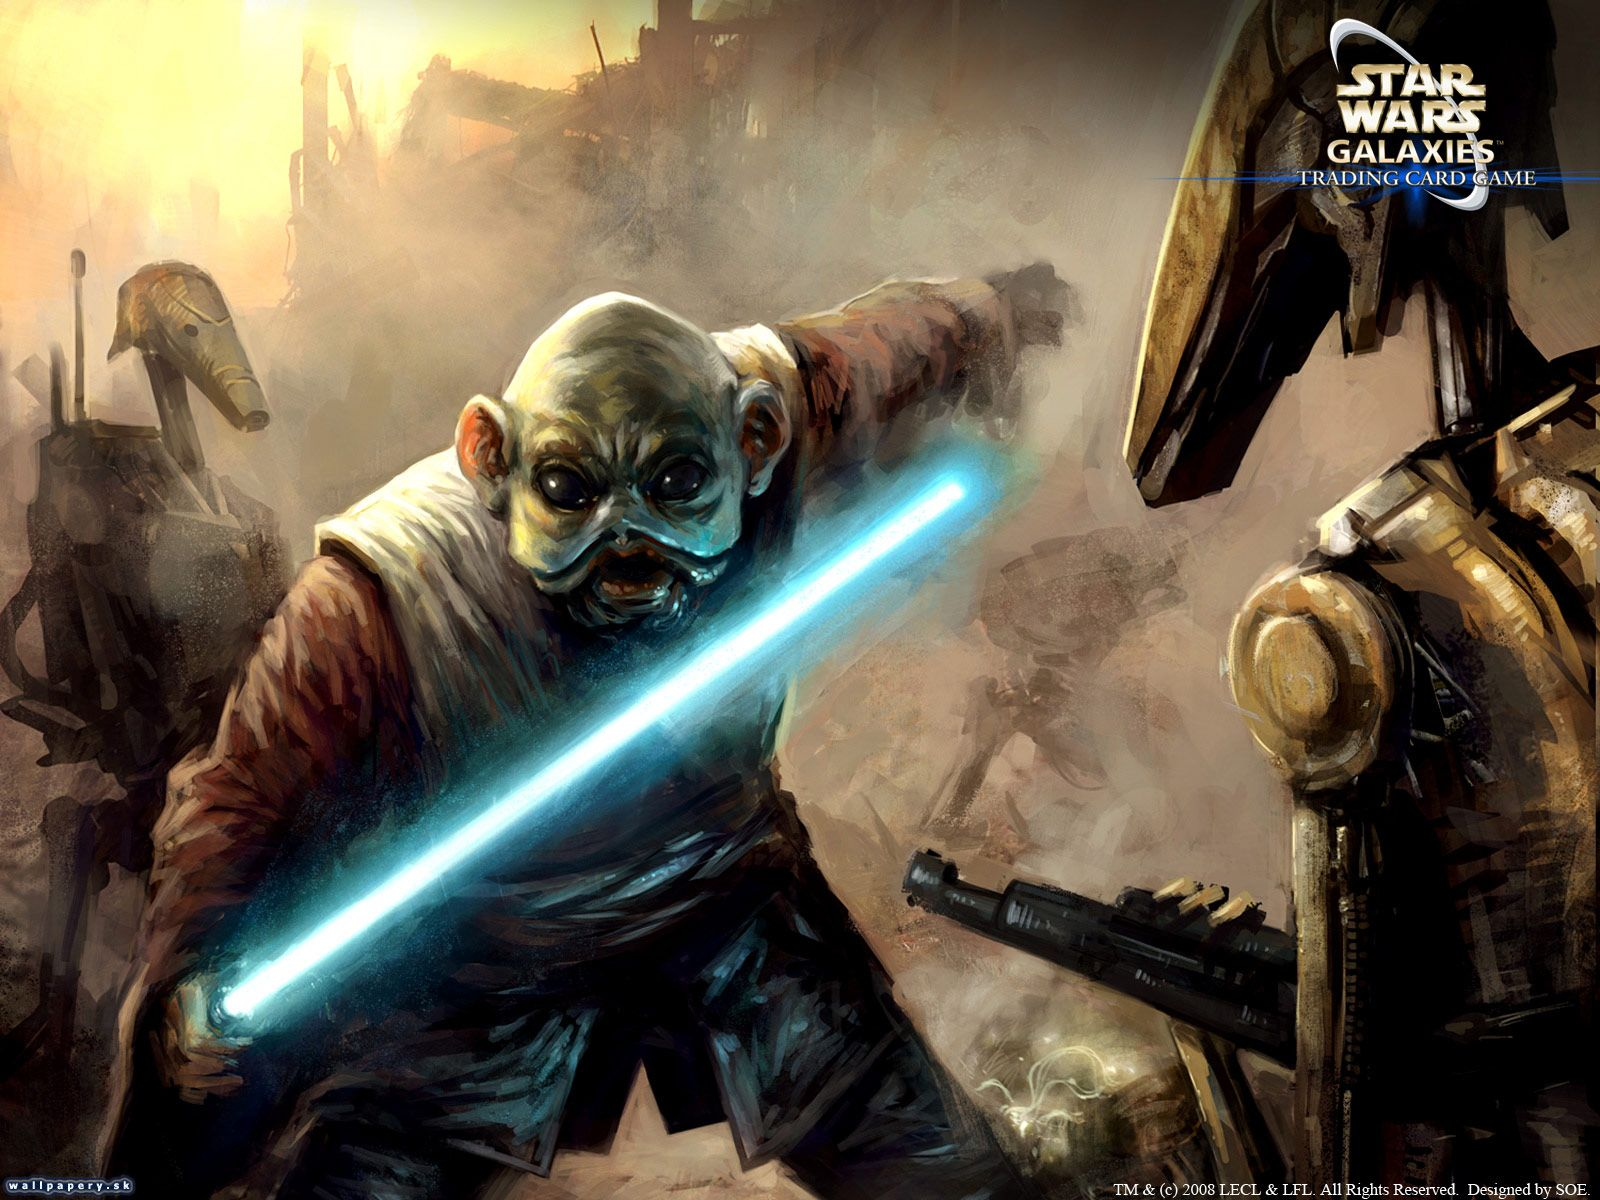 Star Wars Galaxies Trading Card Game Champions Of The Force Wallpaper 4 Star Wars Characters Pictures Star Wars Wallpaper Star Wars Poster Art